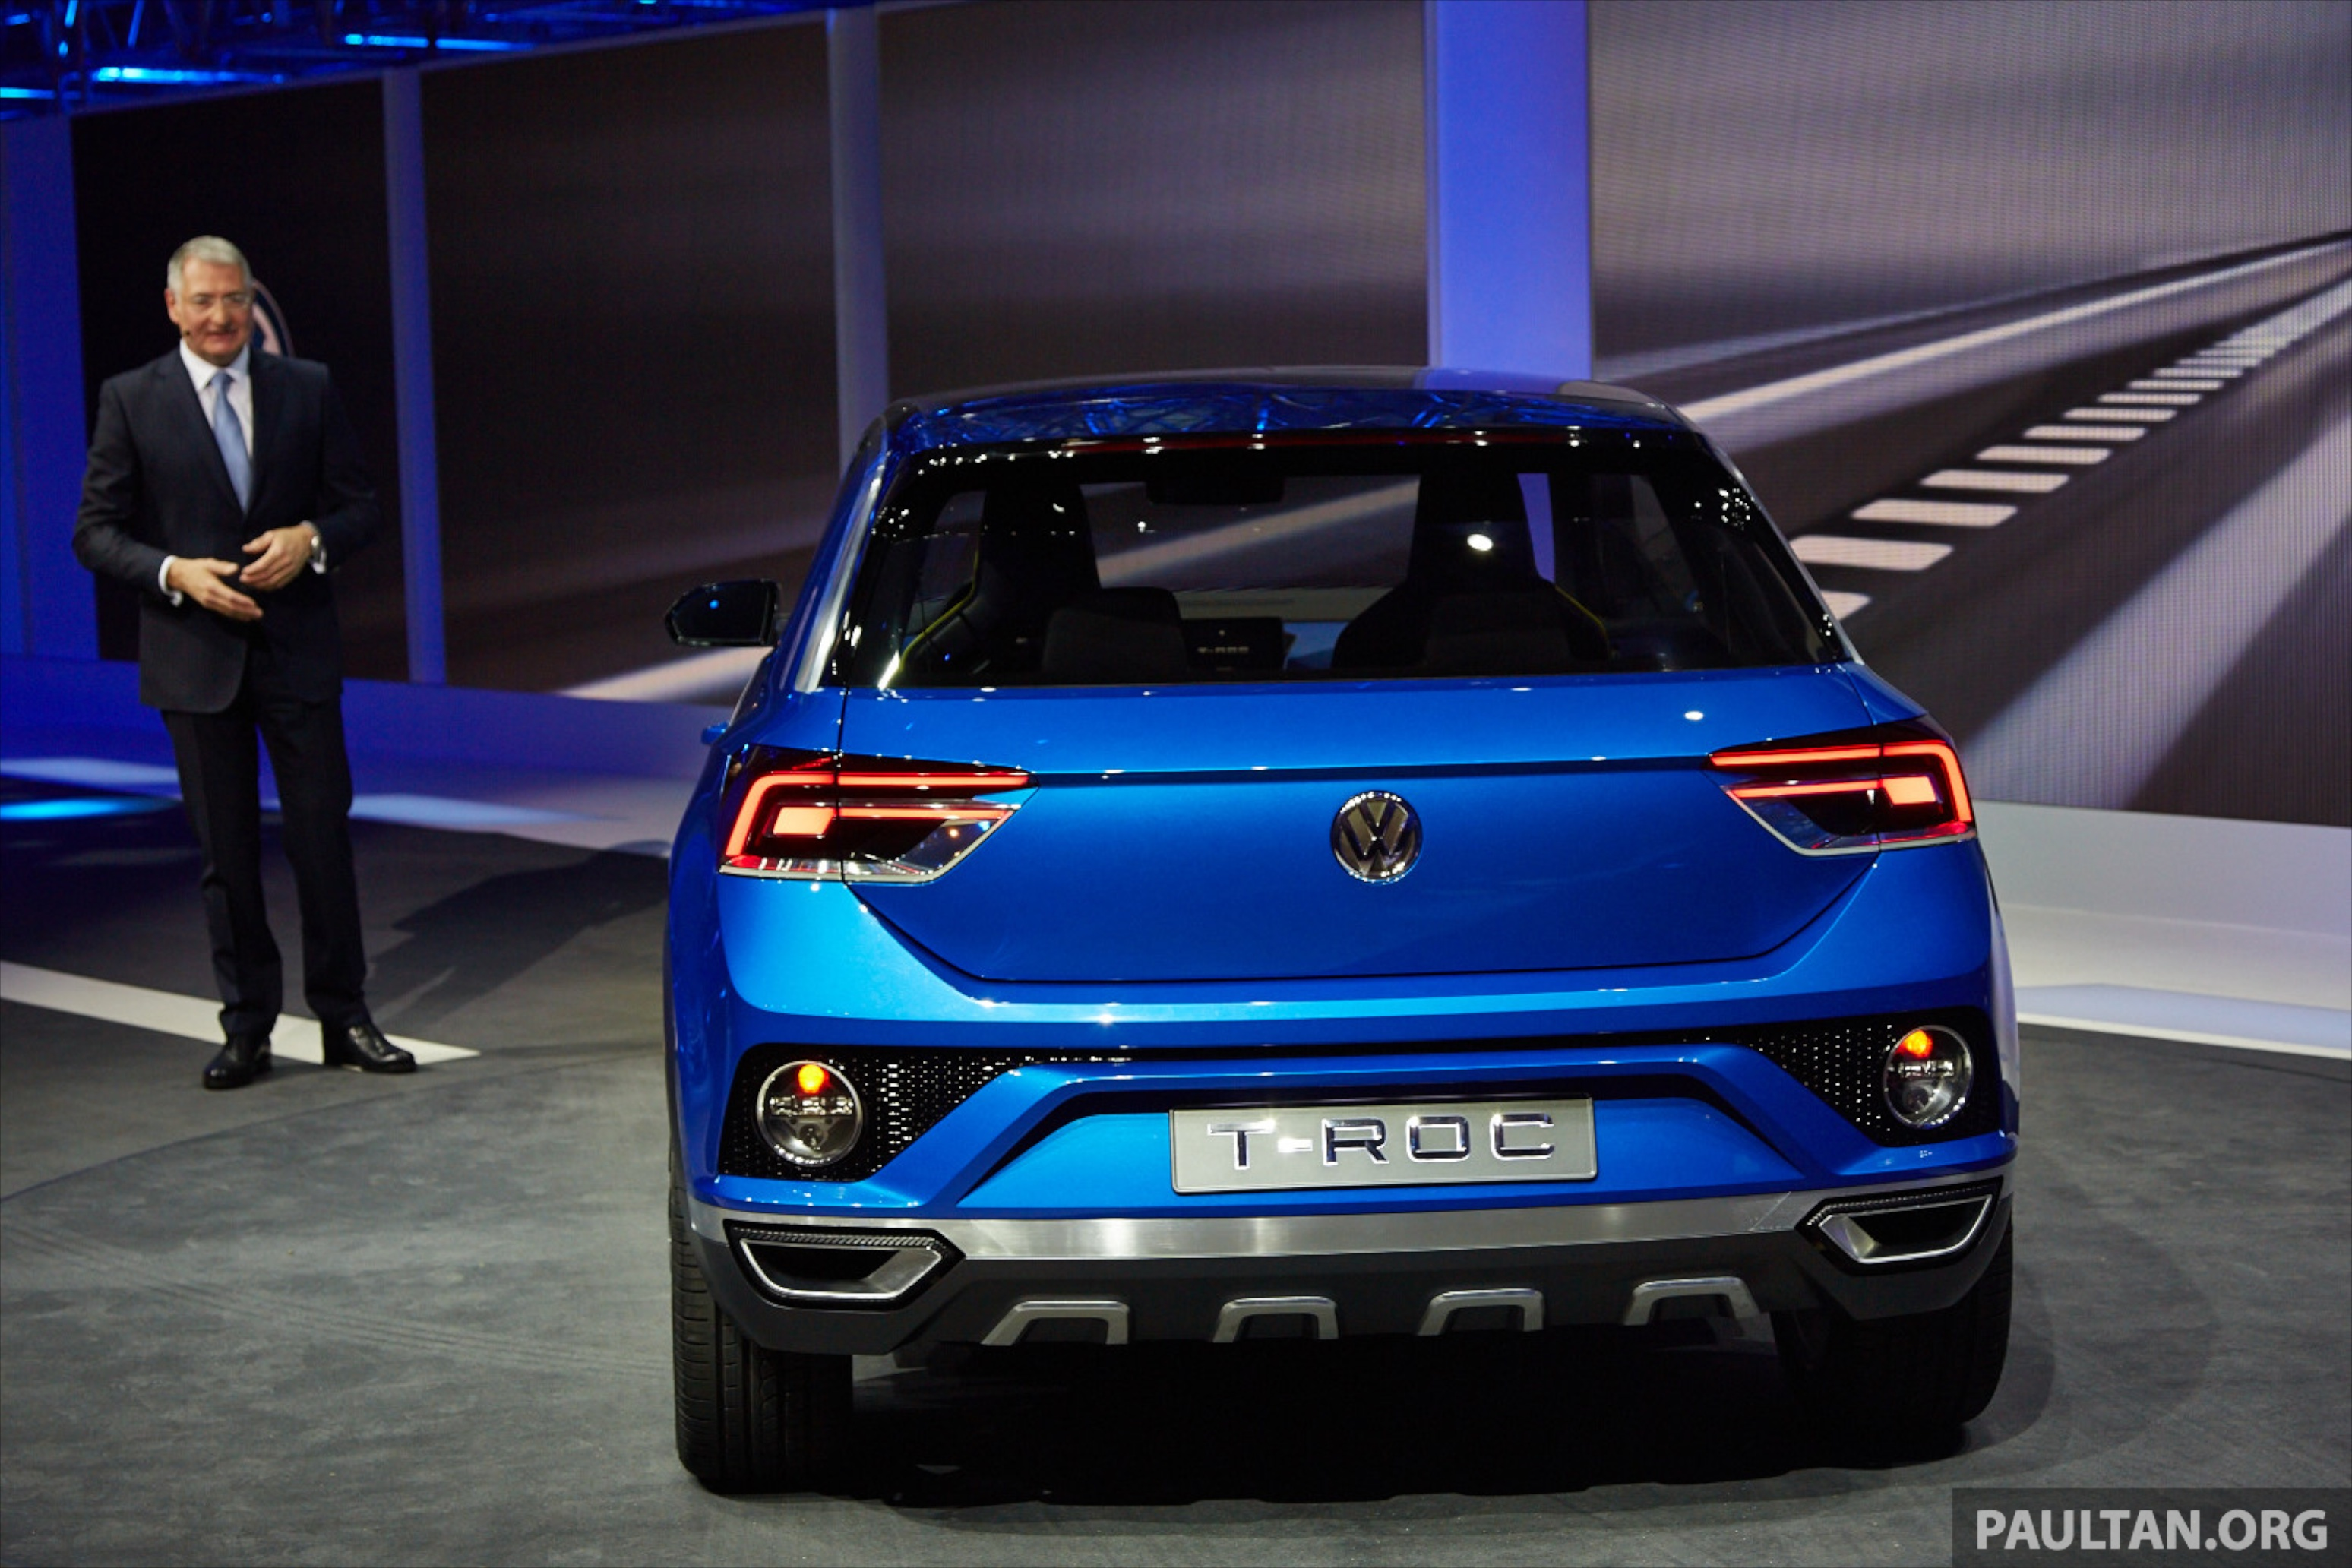 Volkswagen T Roc Concept Previews Upcoming Suv Image 232474